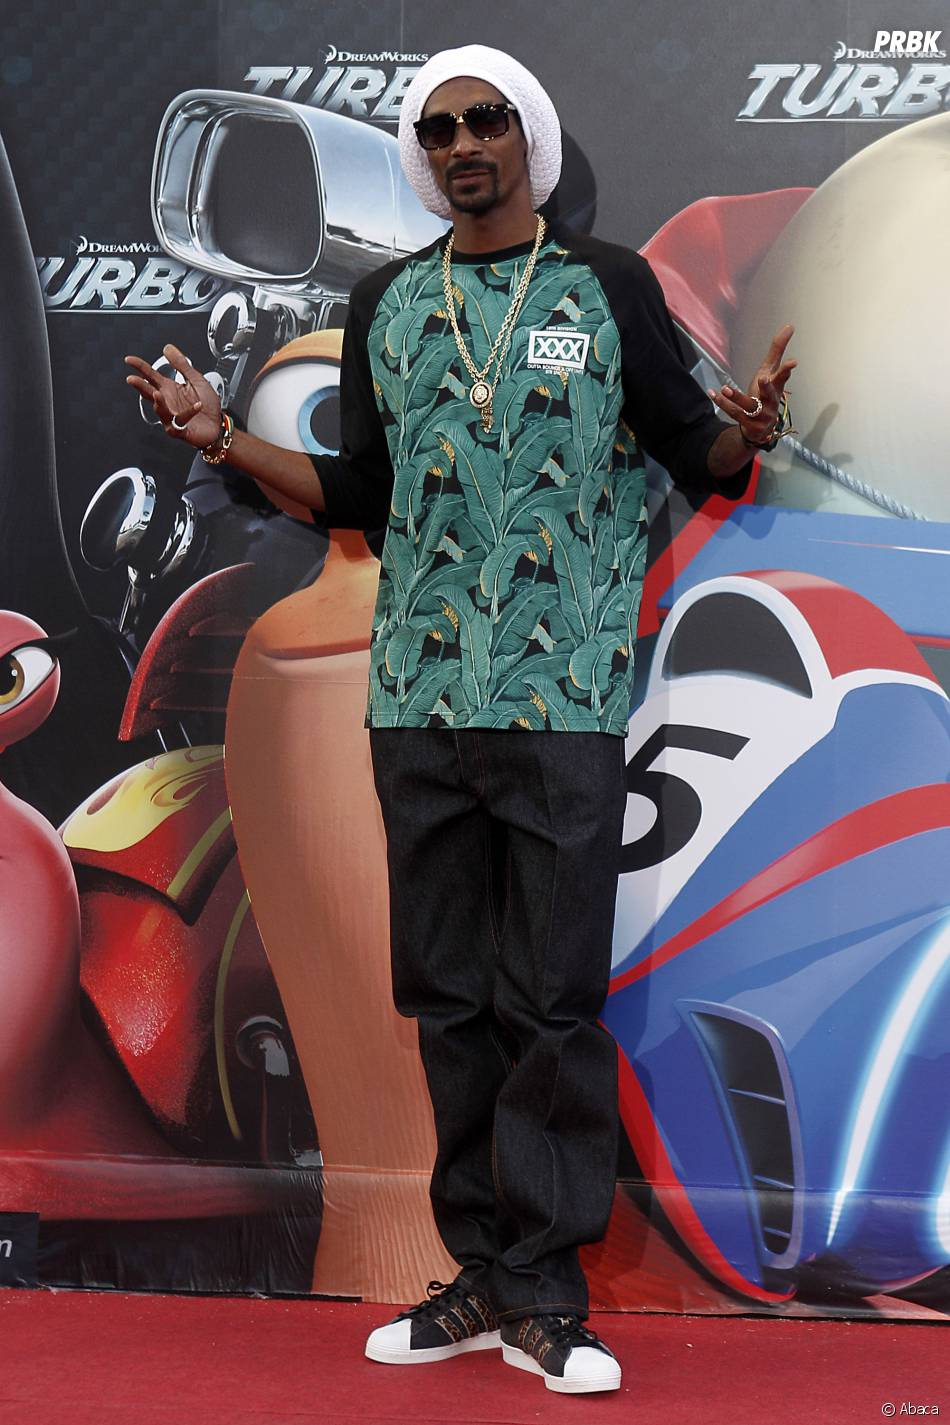 Turbo : Snoop Dogg signe la B.O du film